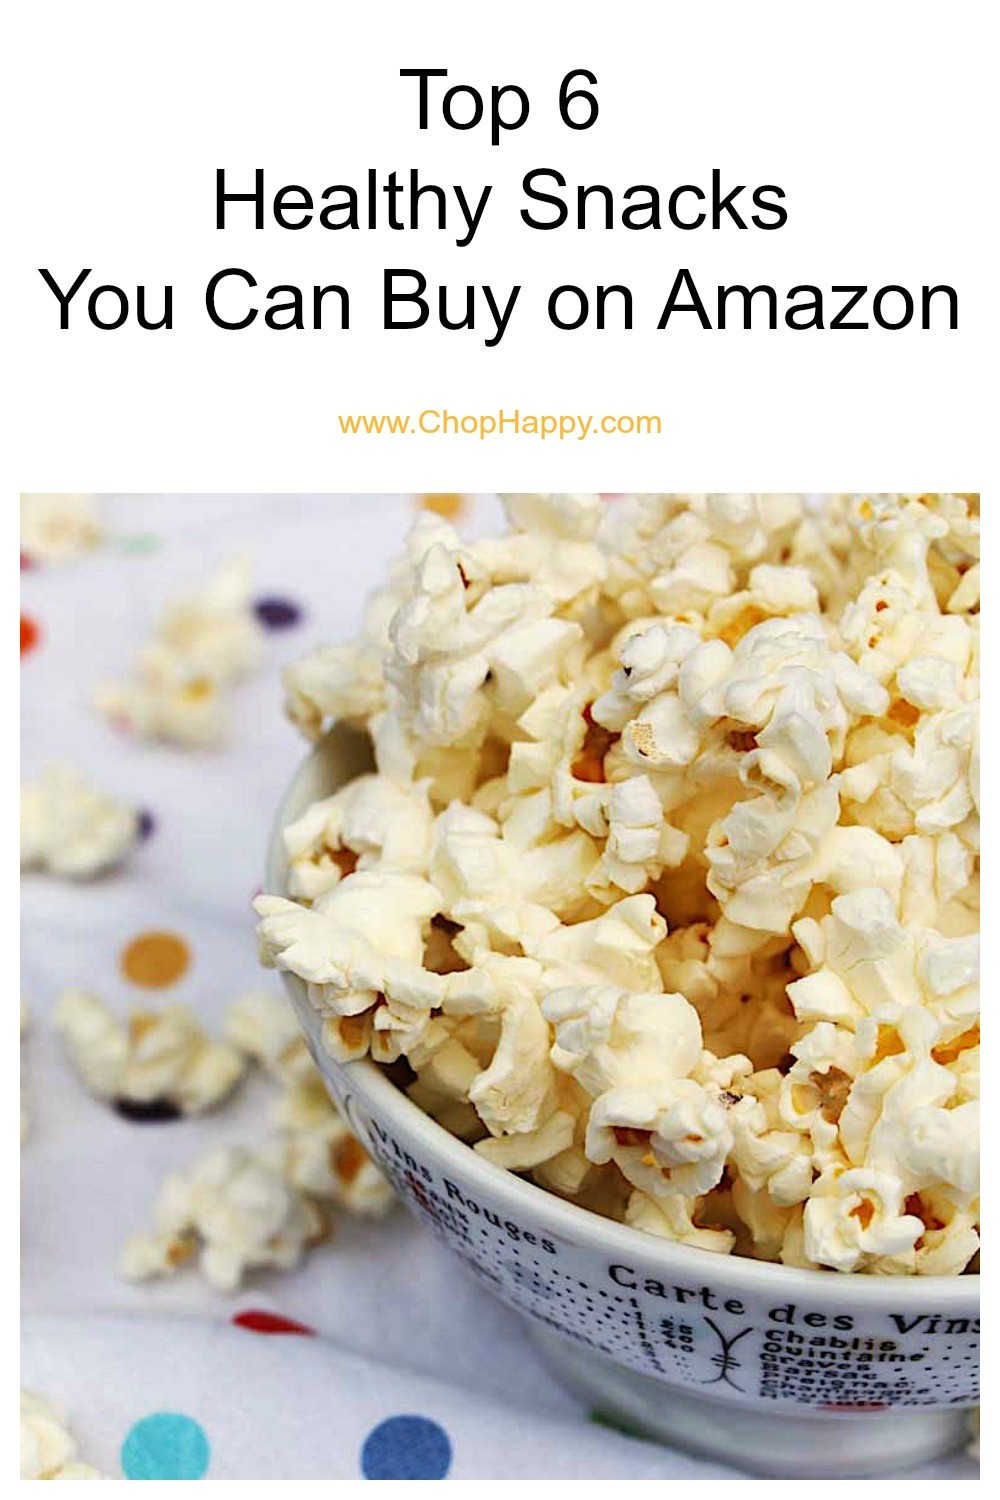 Top 6 Healthy Snacks You Can Buy on Amazon